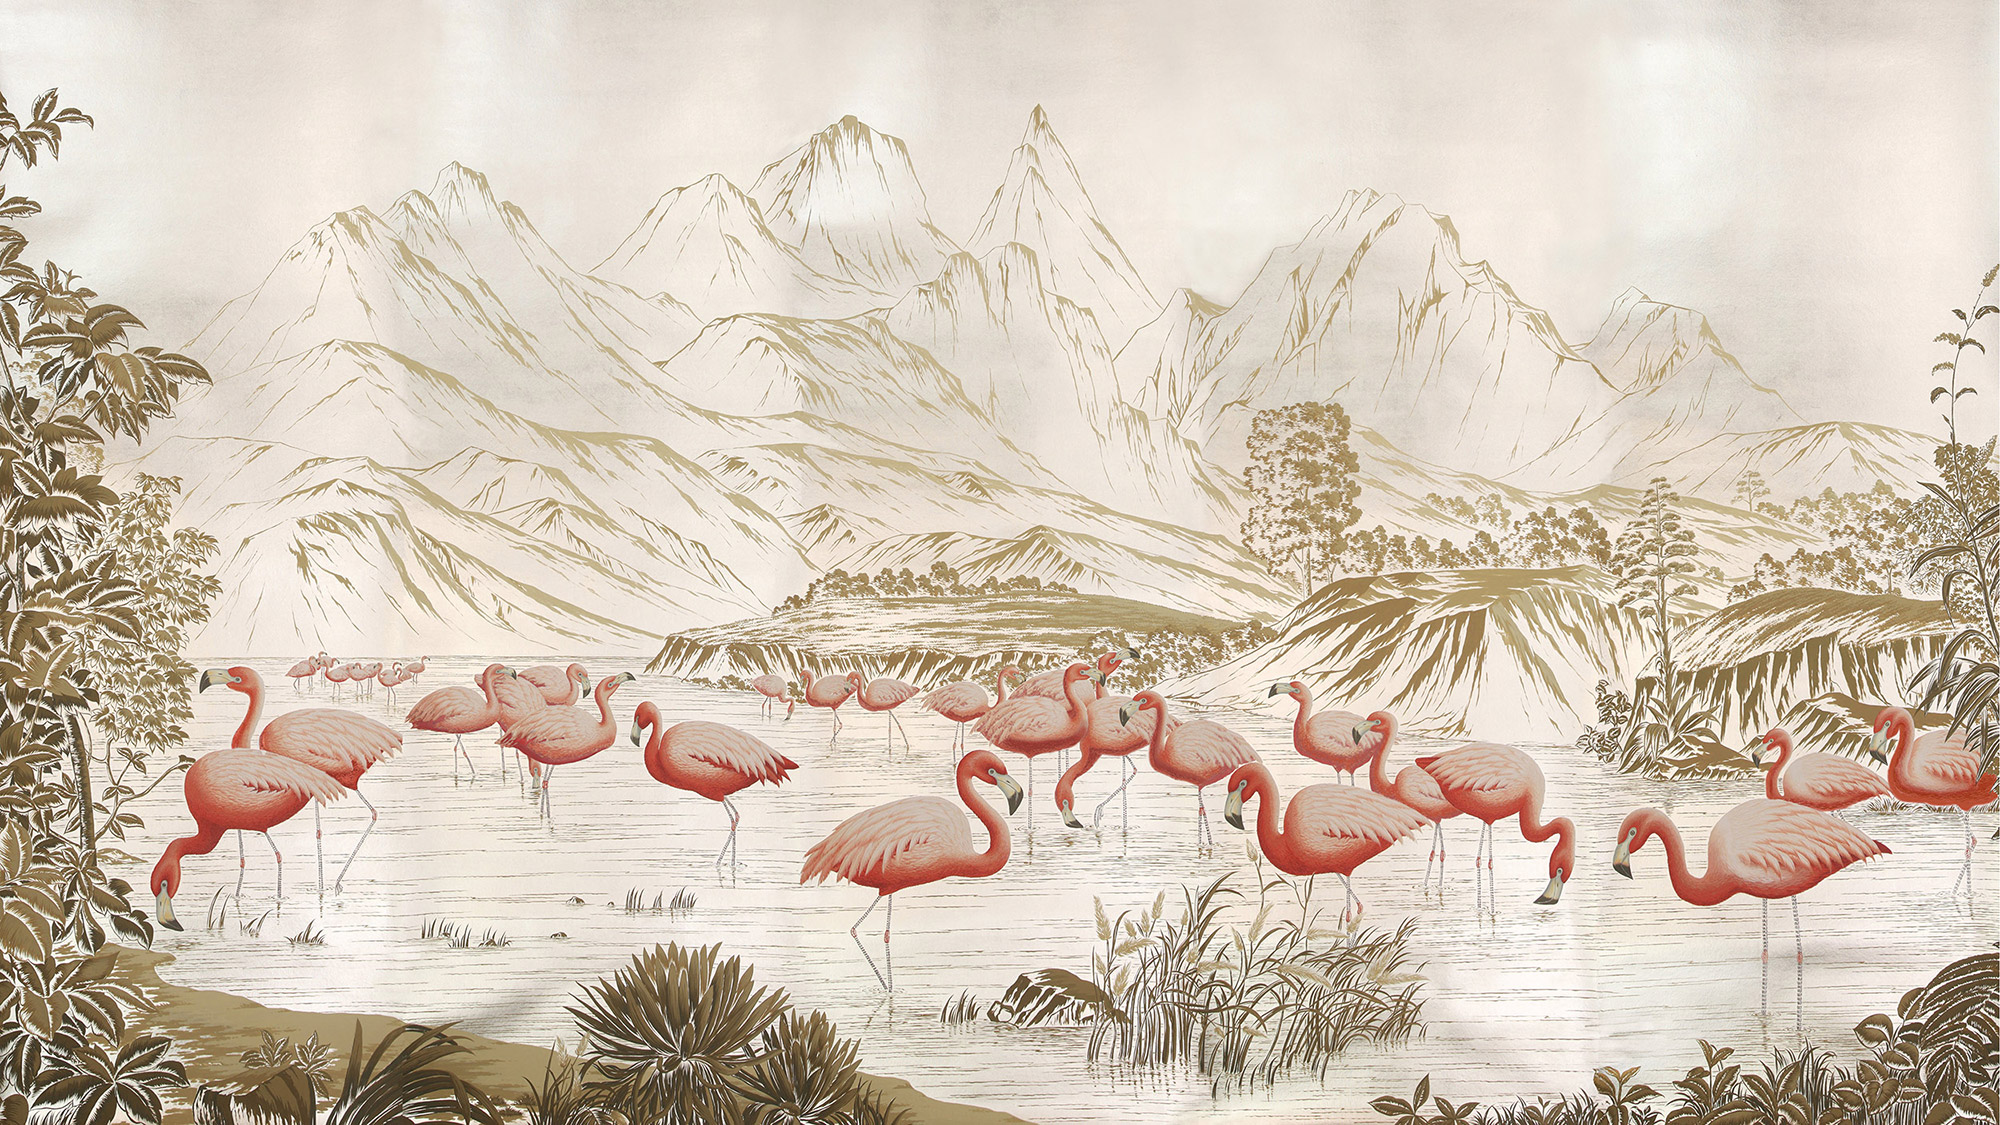 Flamingo on Tarnished Silver gilded Xuan paper